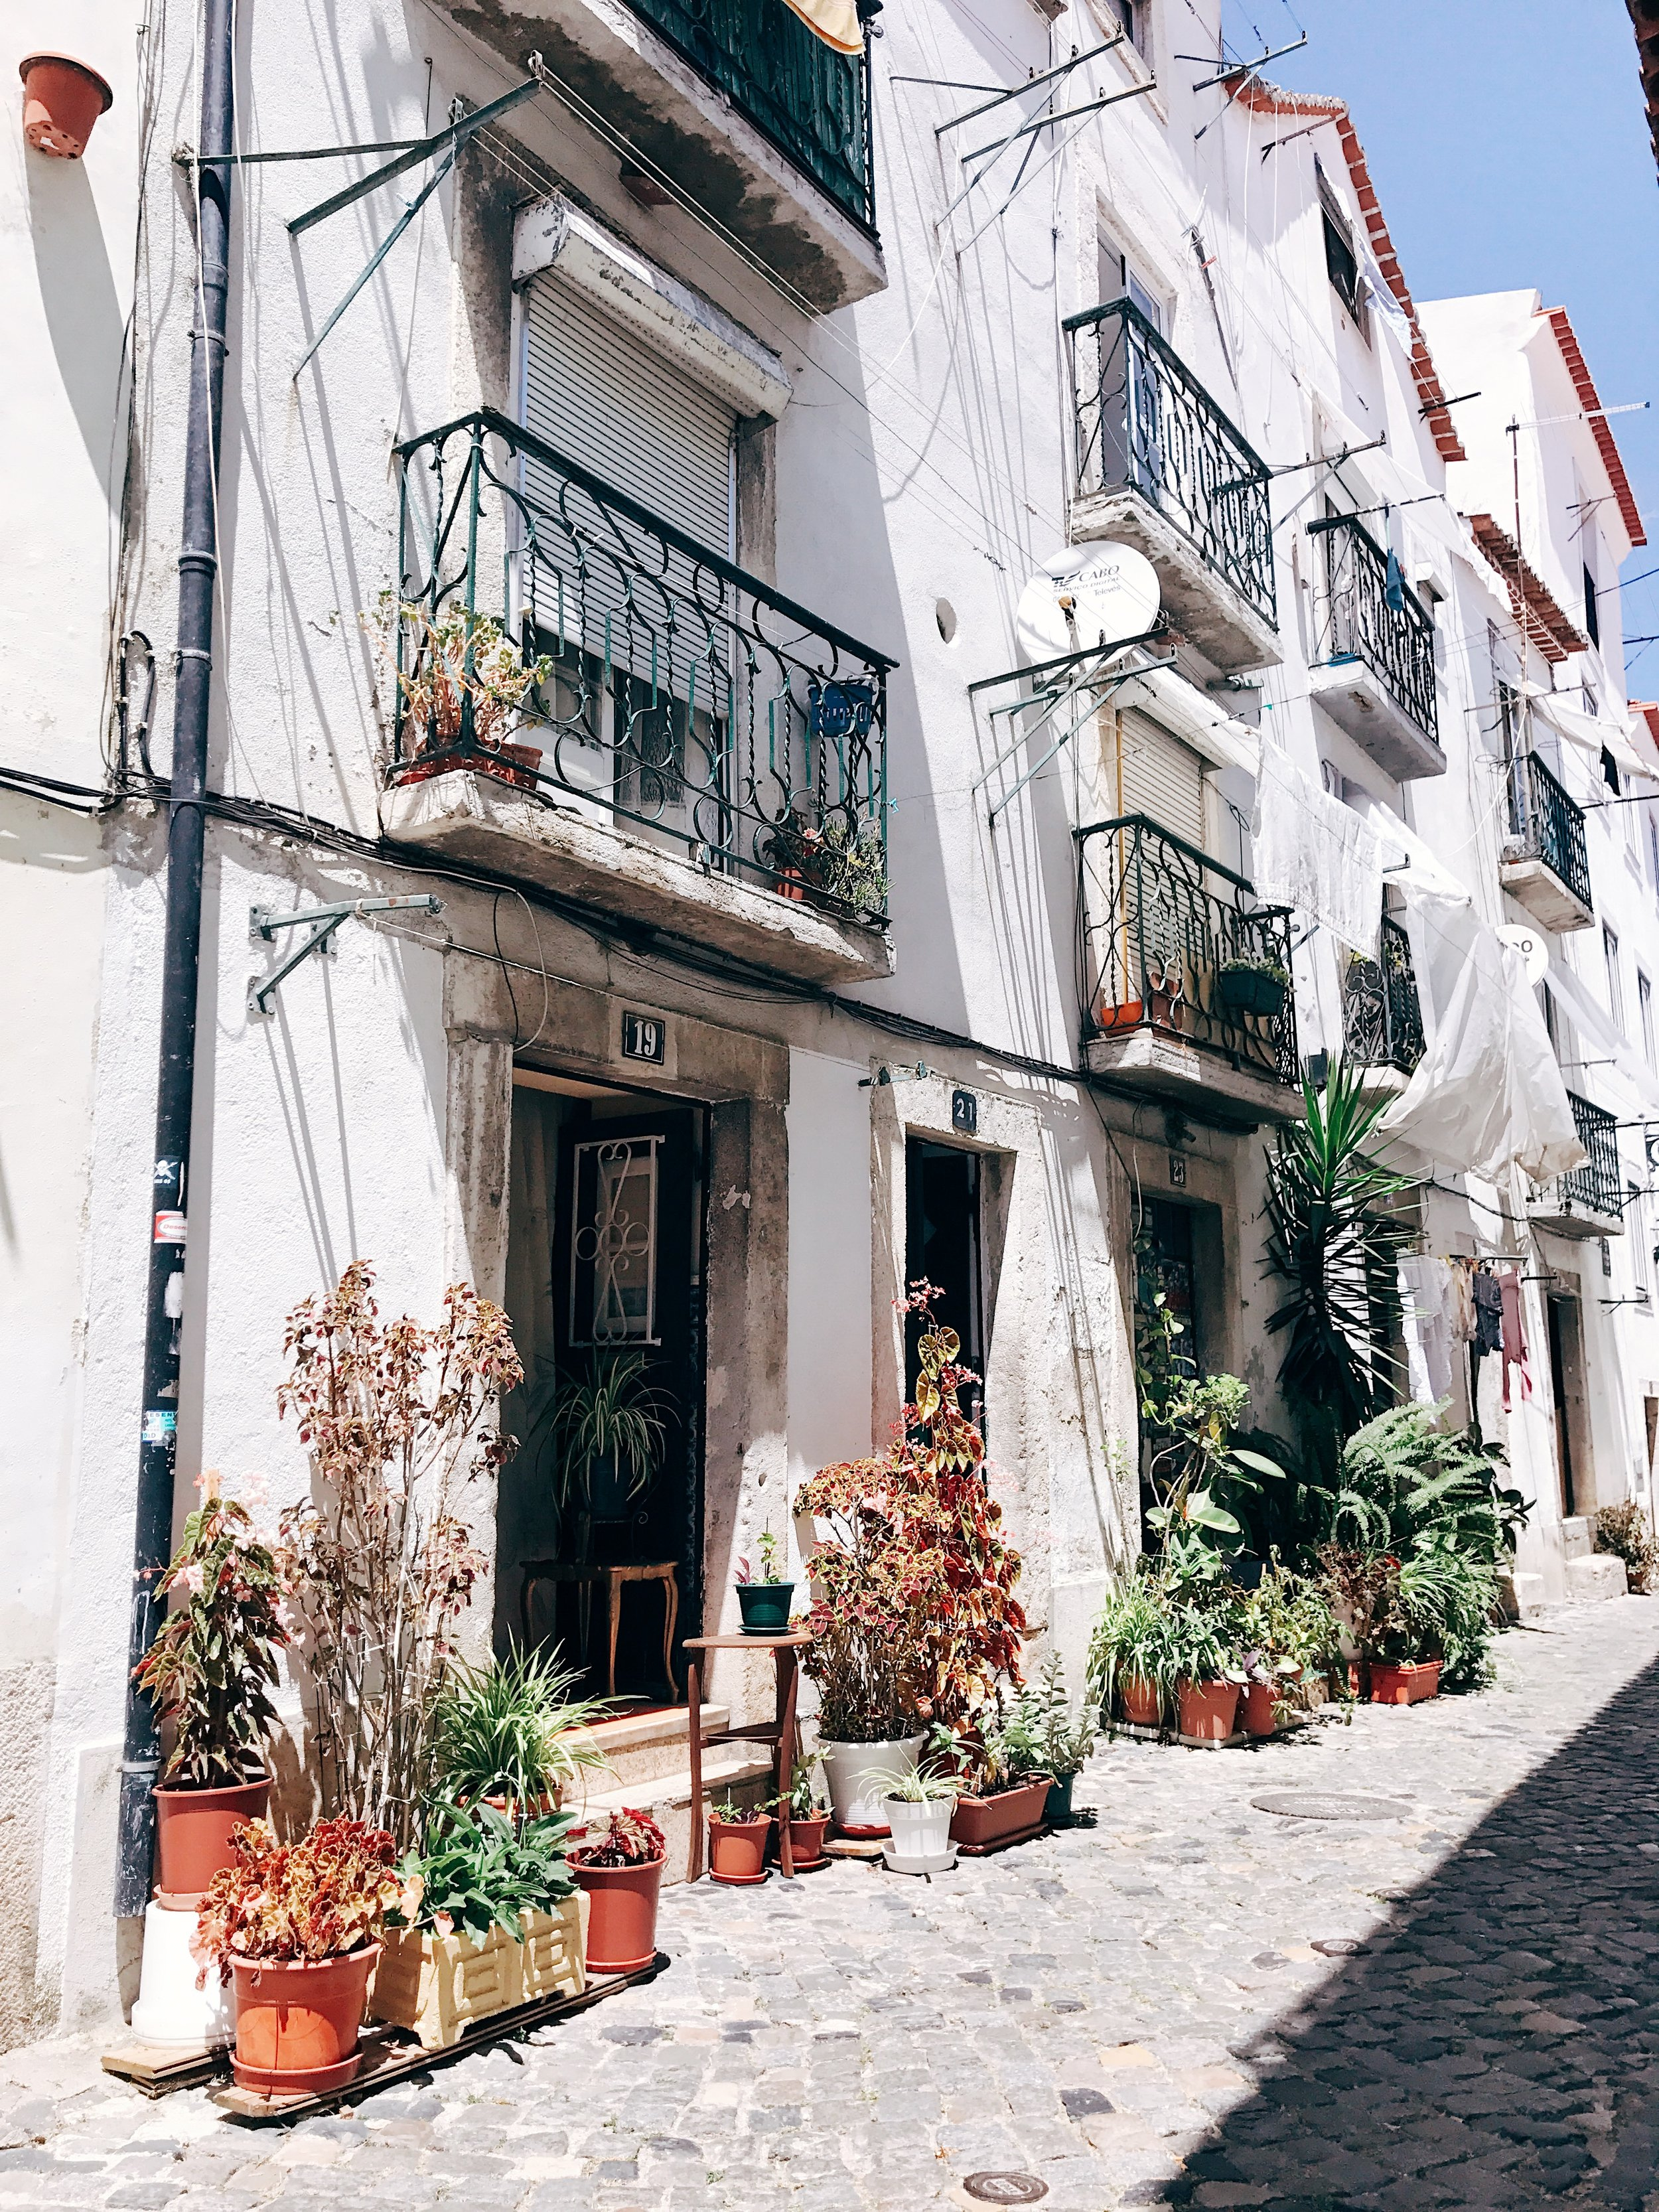 Image: Where to Travel in 2018 - Lisbon - Portugal